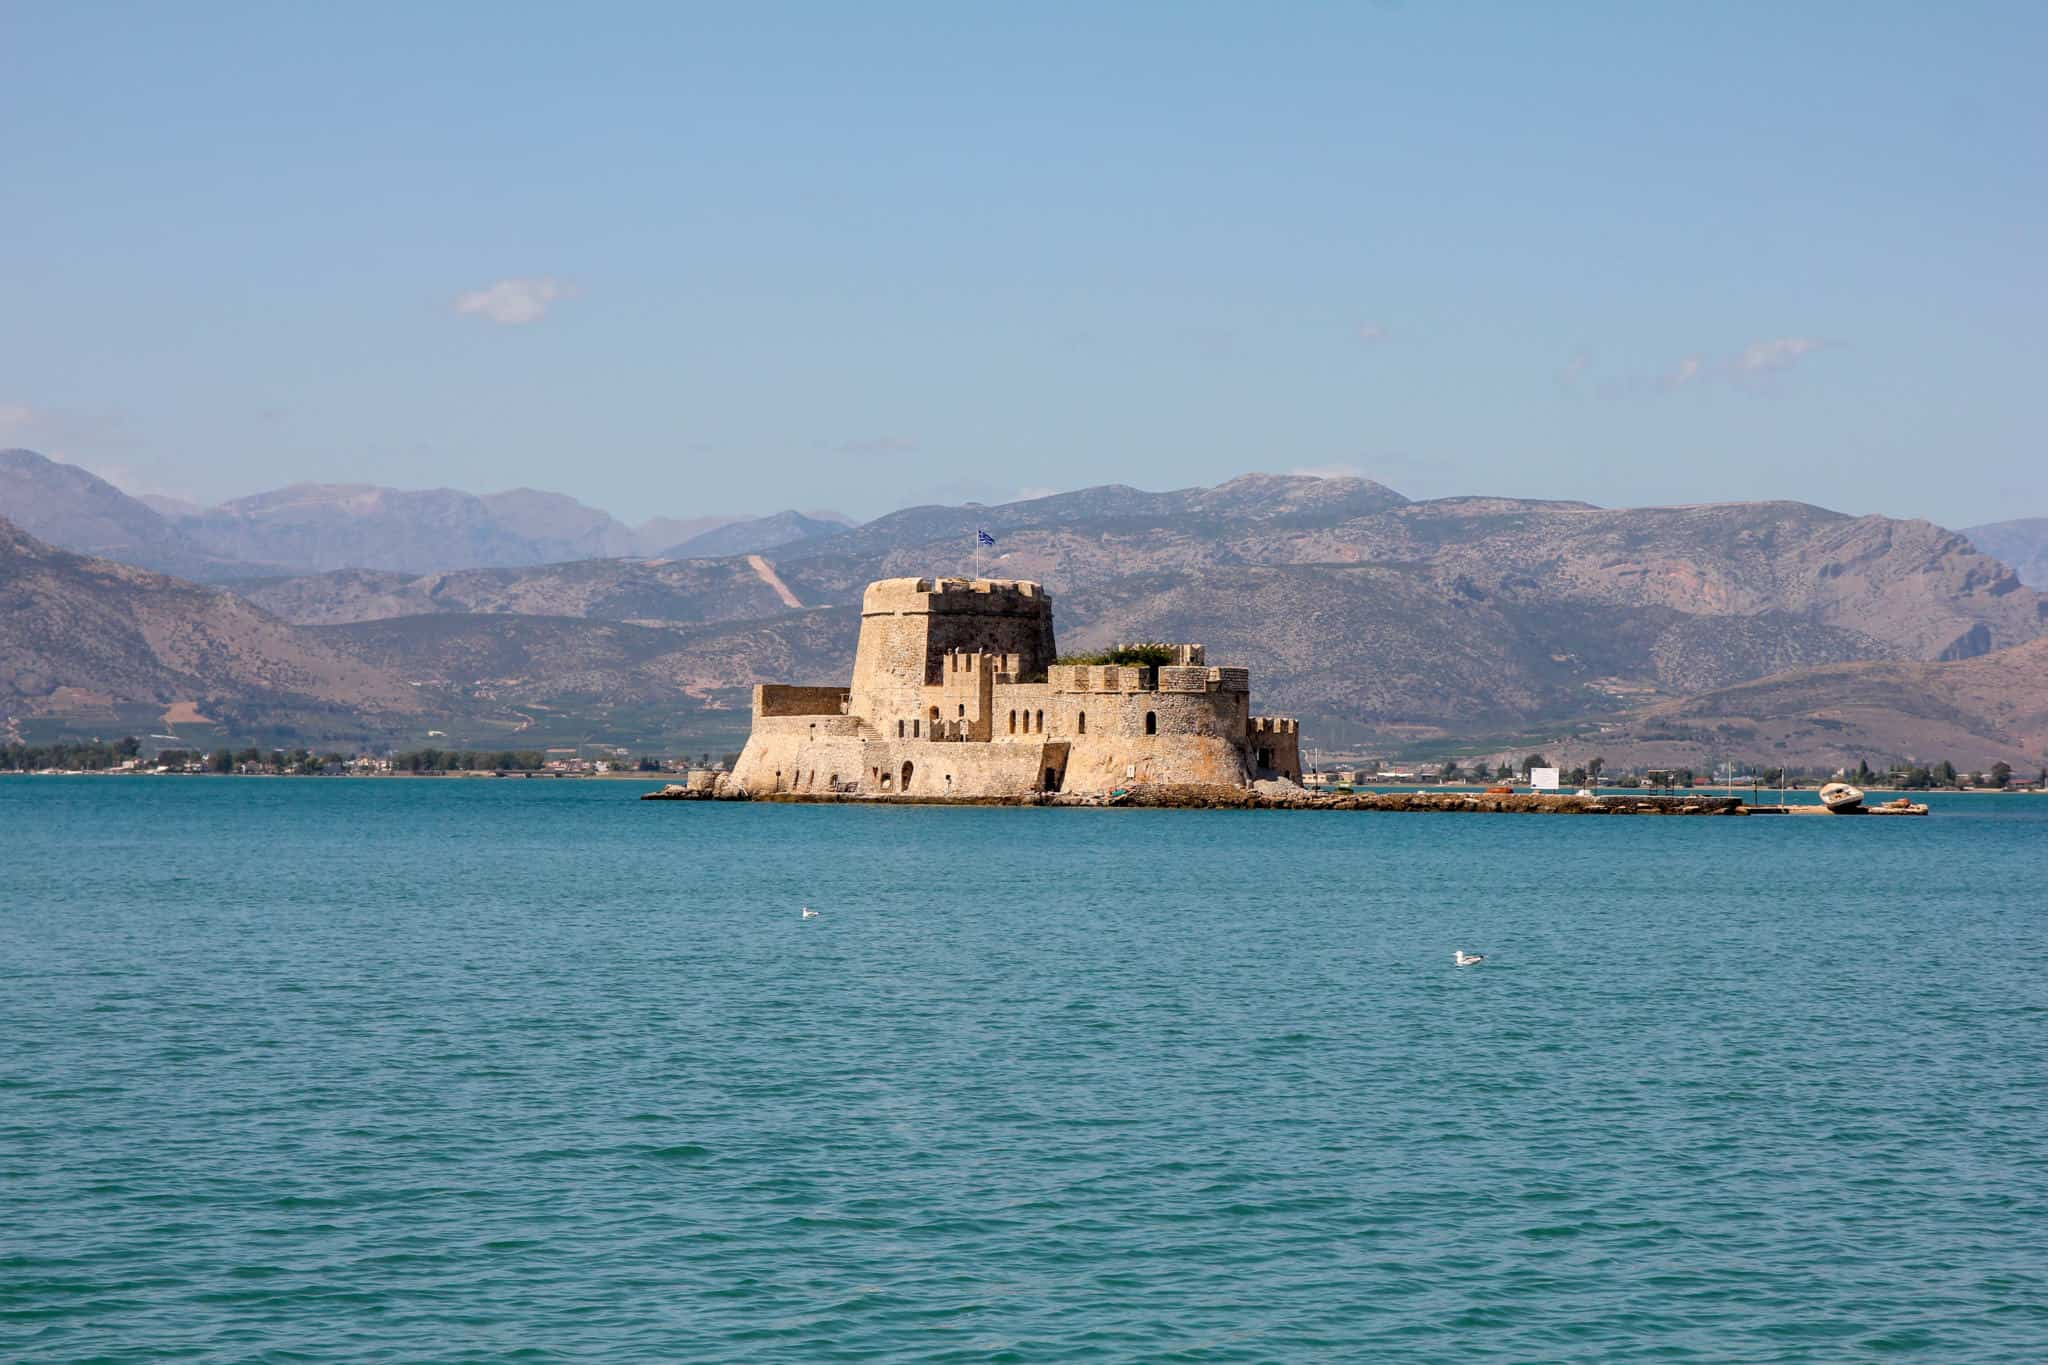 Visiting Bourtzi Castle is one of the things to do in Nafplio